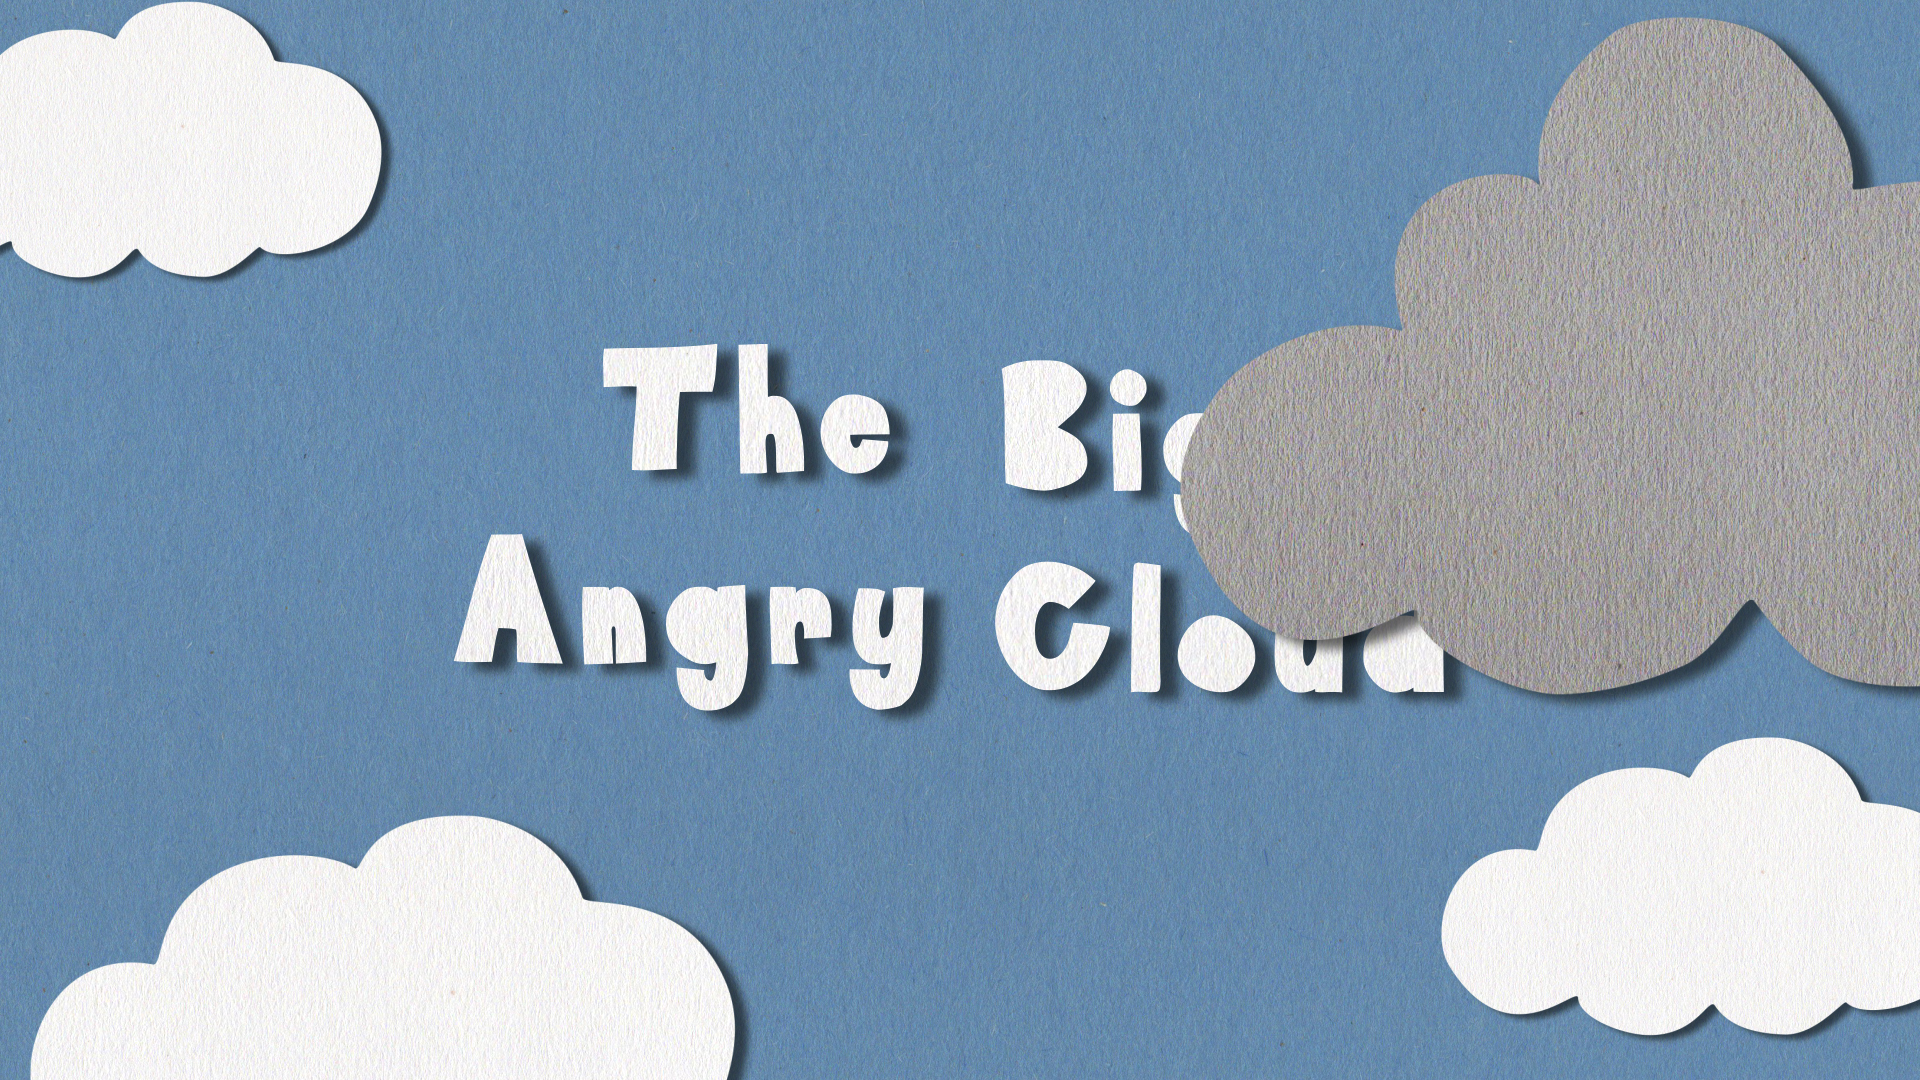 The Big Angry Cloud